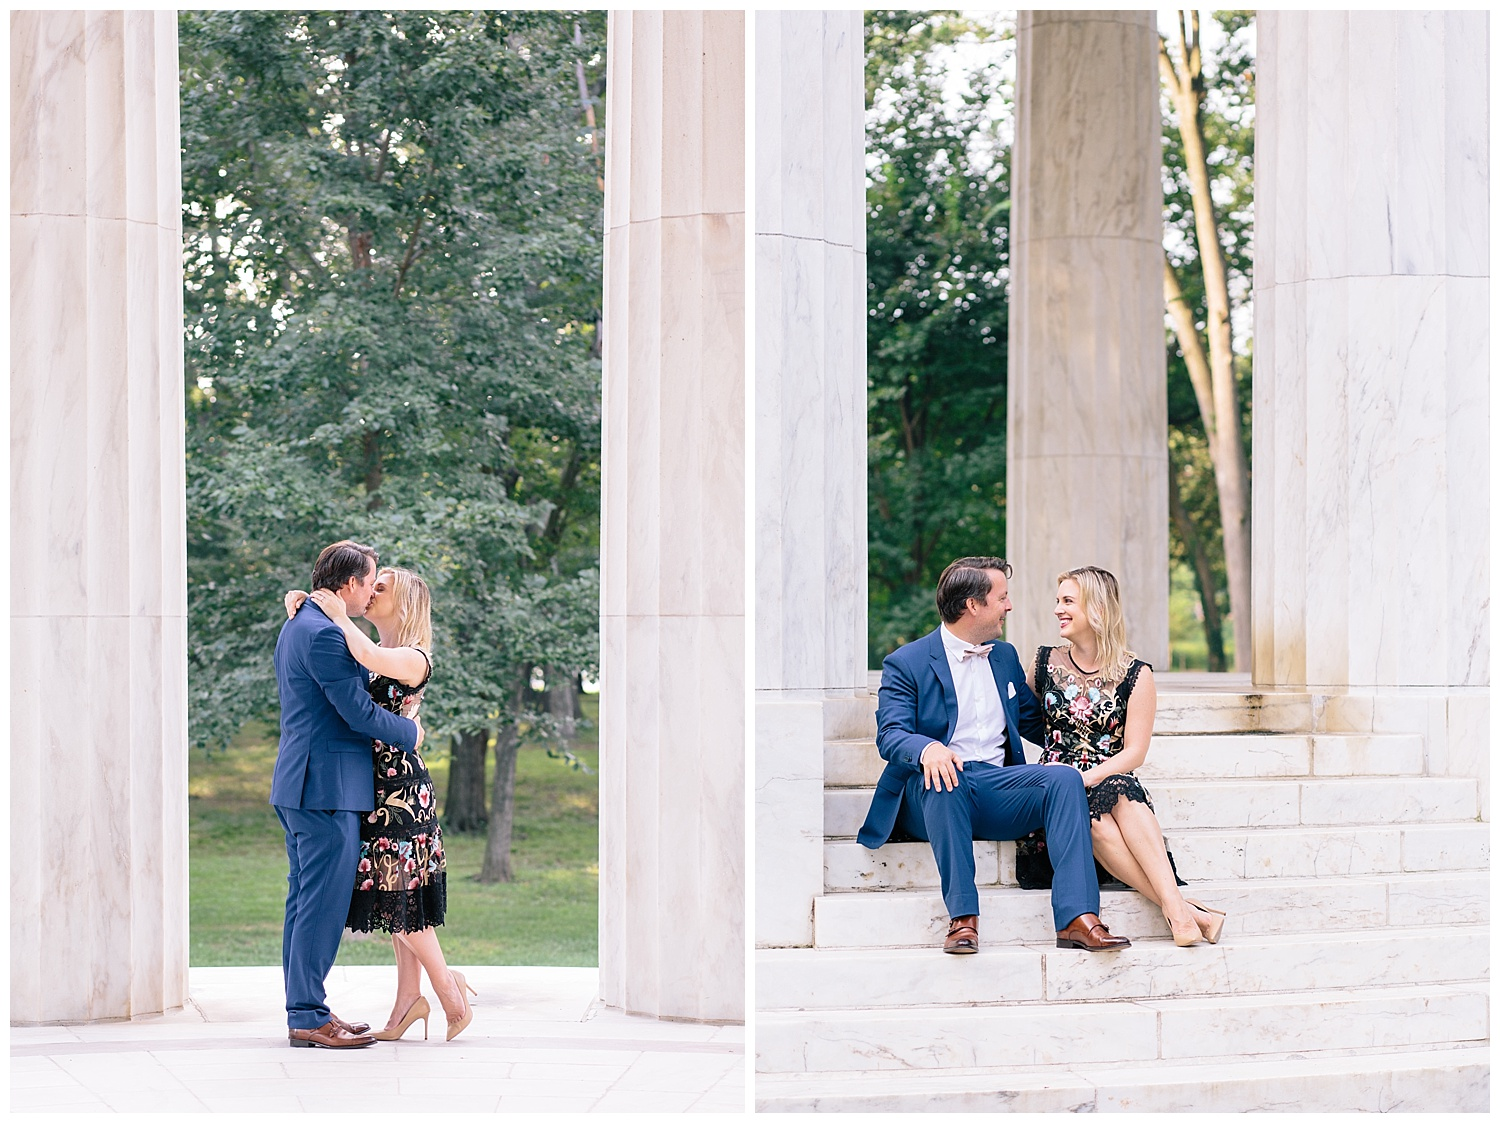 emily-belson-photography-washington-dc-engagement-emily-john-15.jpg